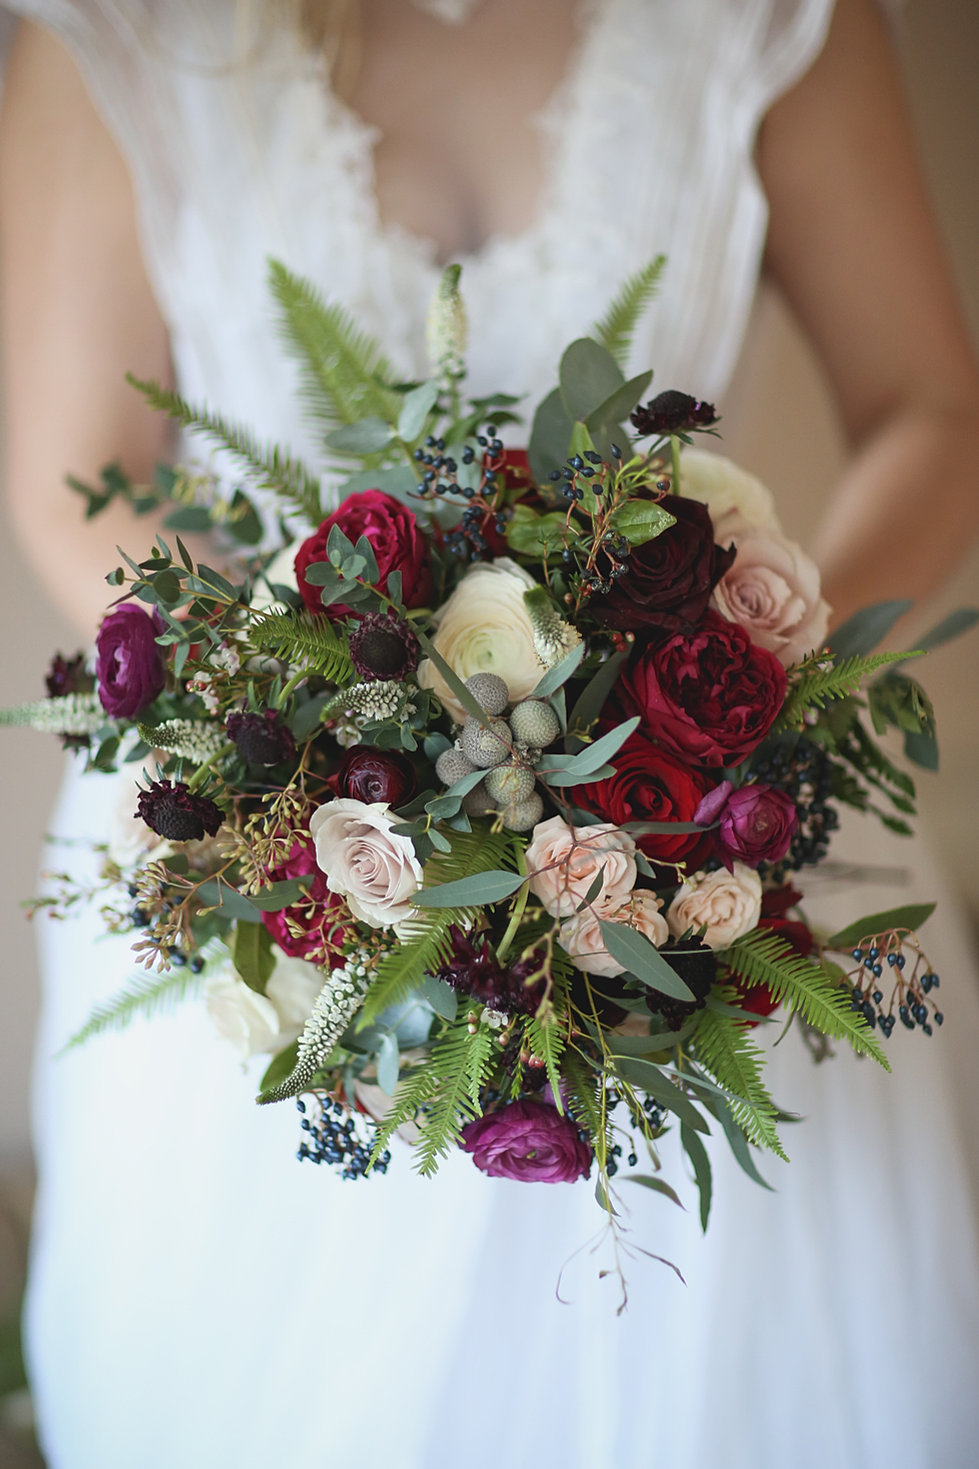 Wedding flowers by pumpkin and pye winter wedding flowers junglespirit Image collections